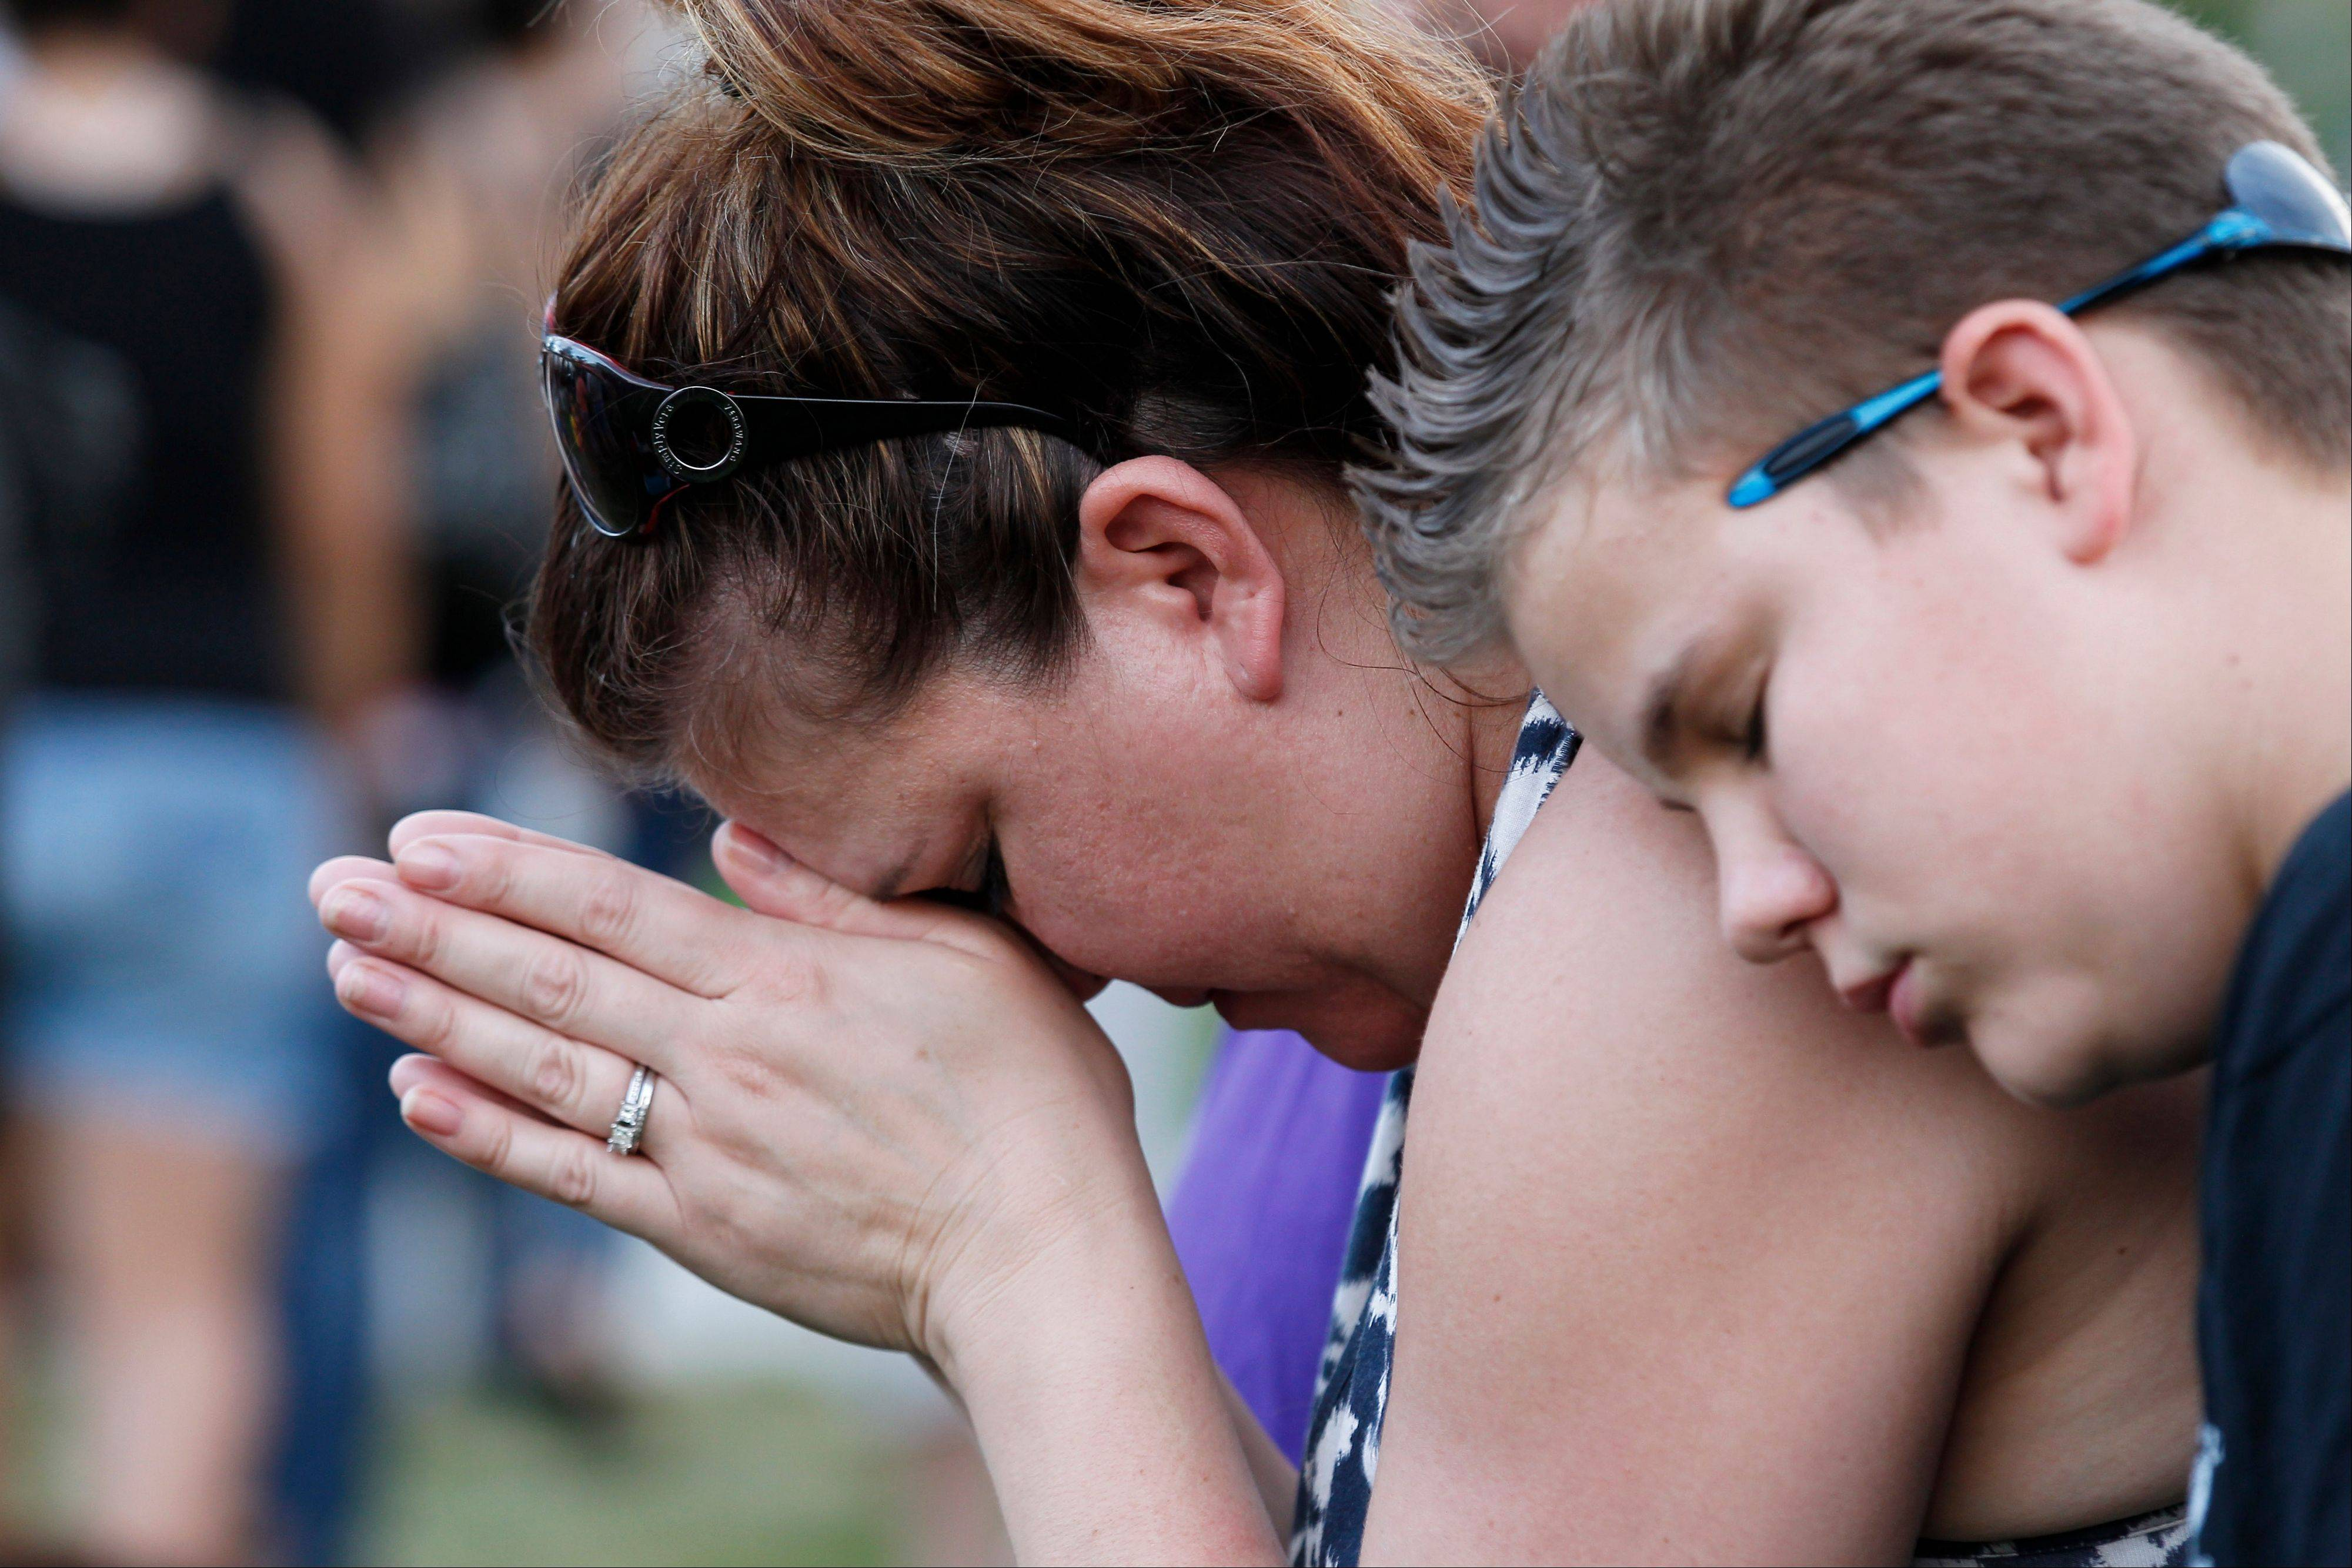 Dylan Bowen, 13, right, holds onto his mother Lorri Hastings as they pray Sunday in Aurora, Colo., during a prayer vigil for the victims of Friday's mass shooting at a movie theater.